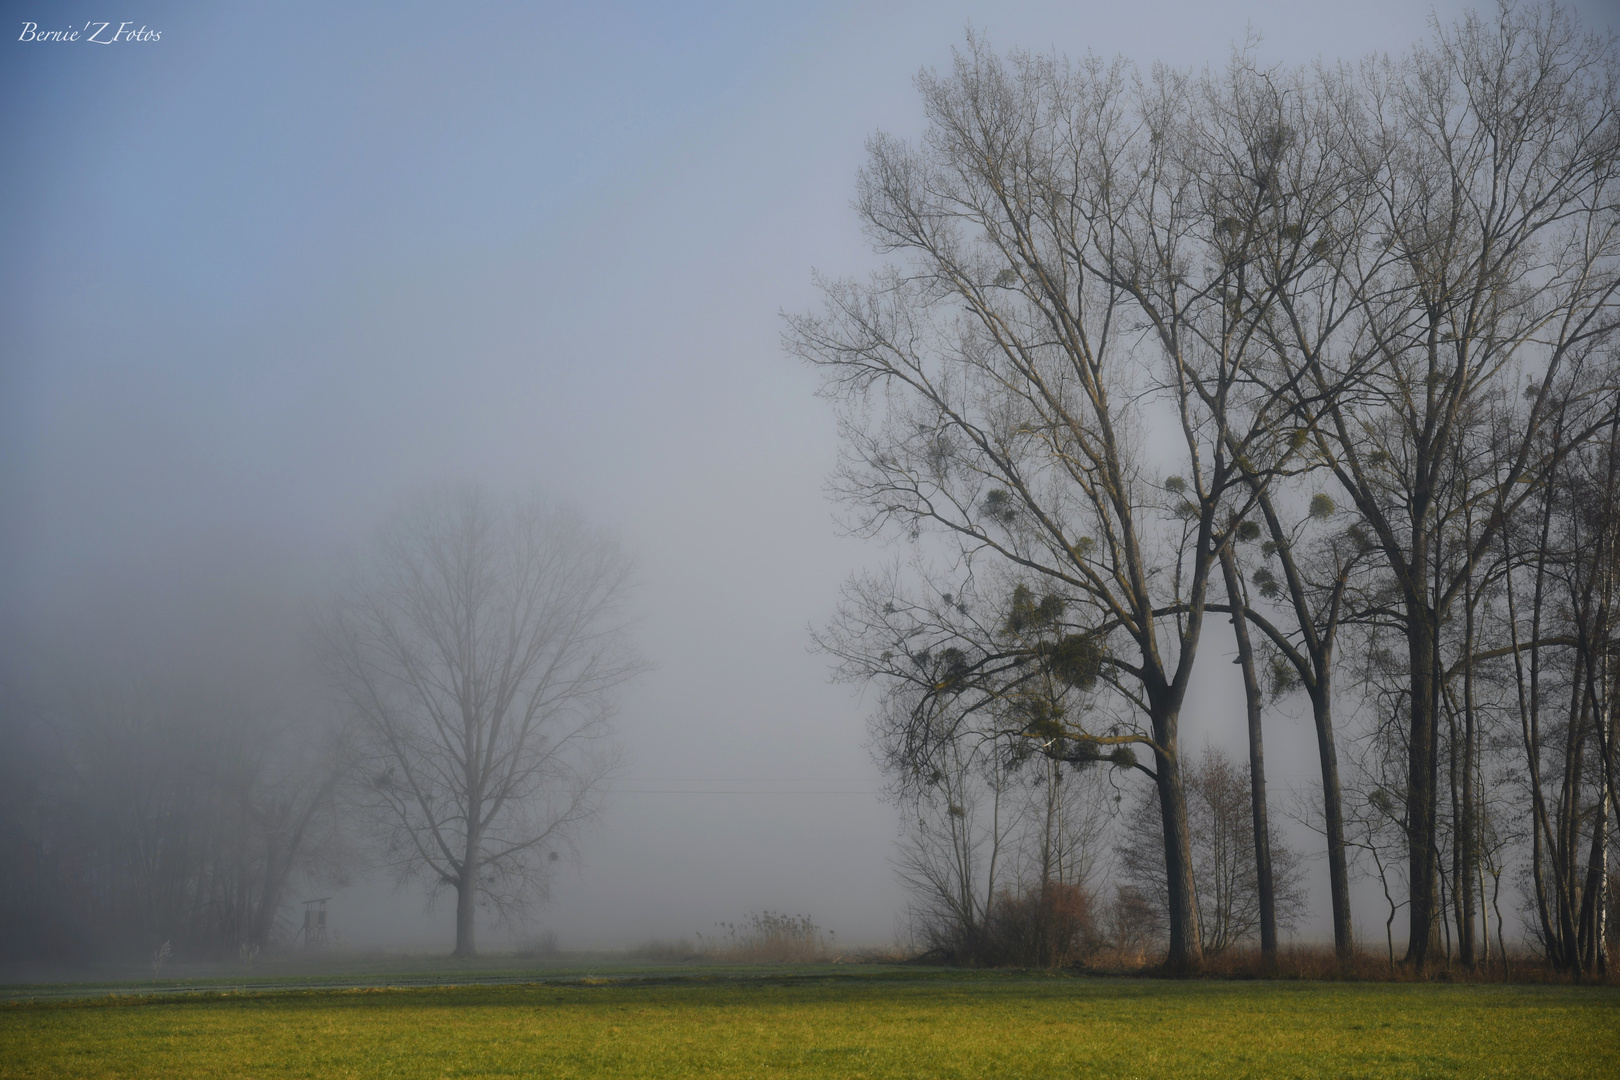 Fog on the country